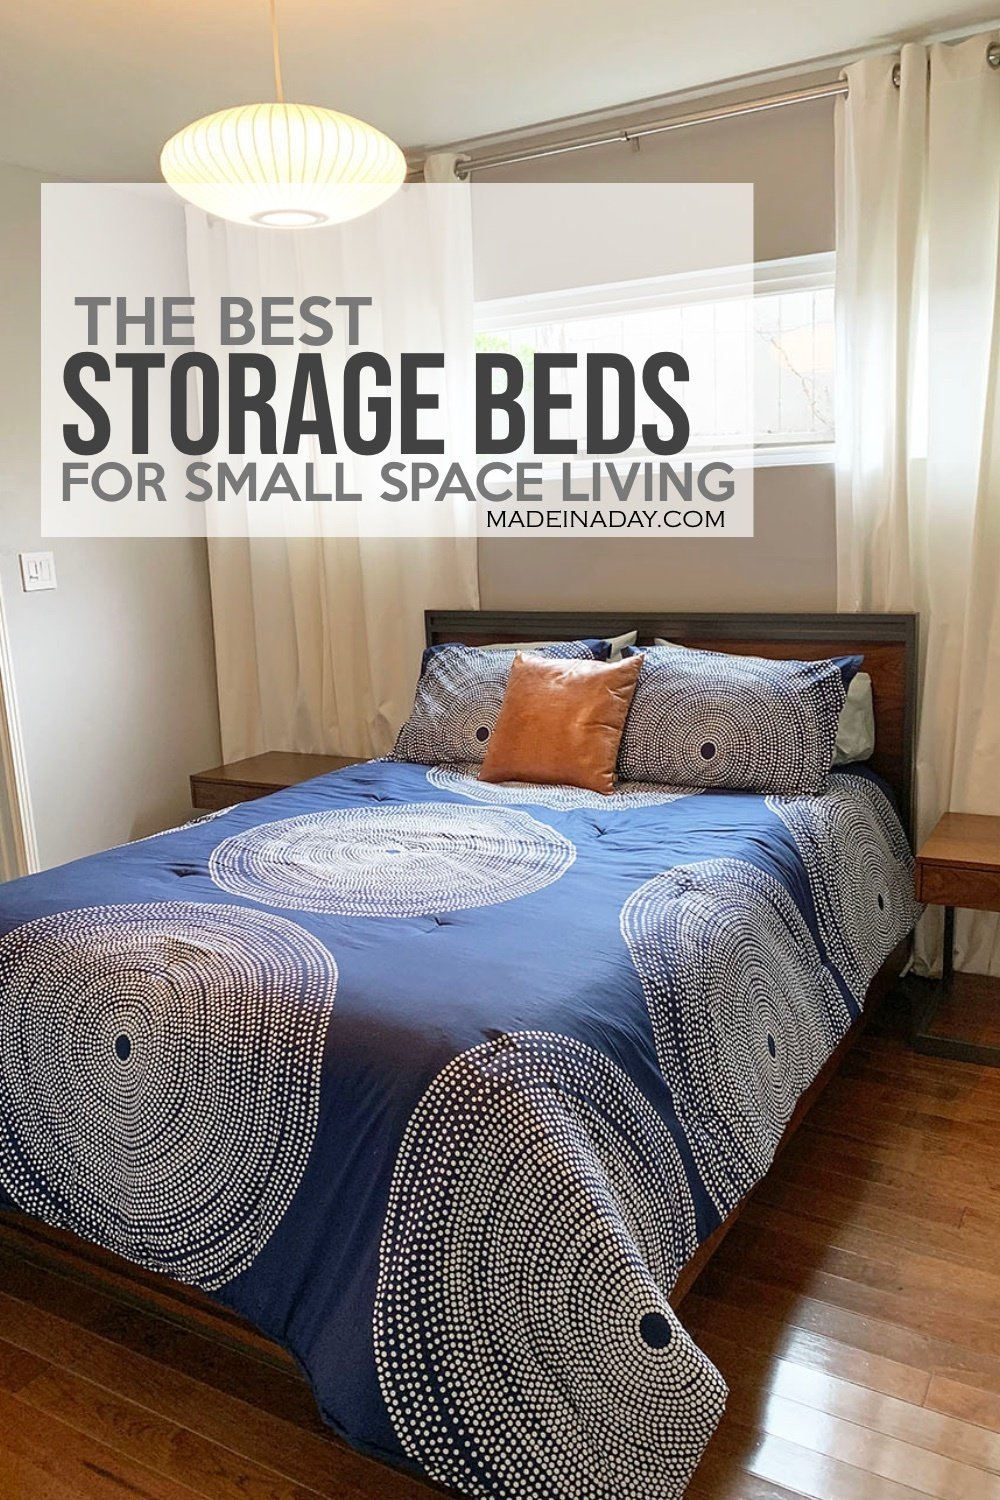 The Best Storage Beds for Small Spaces